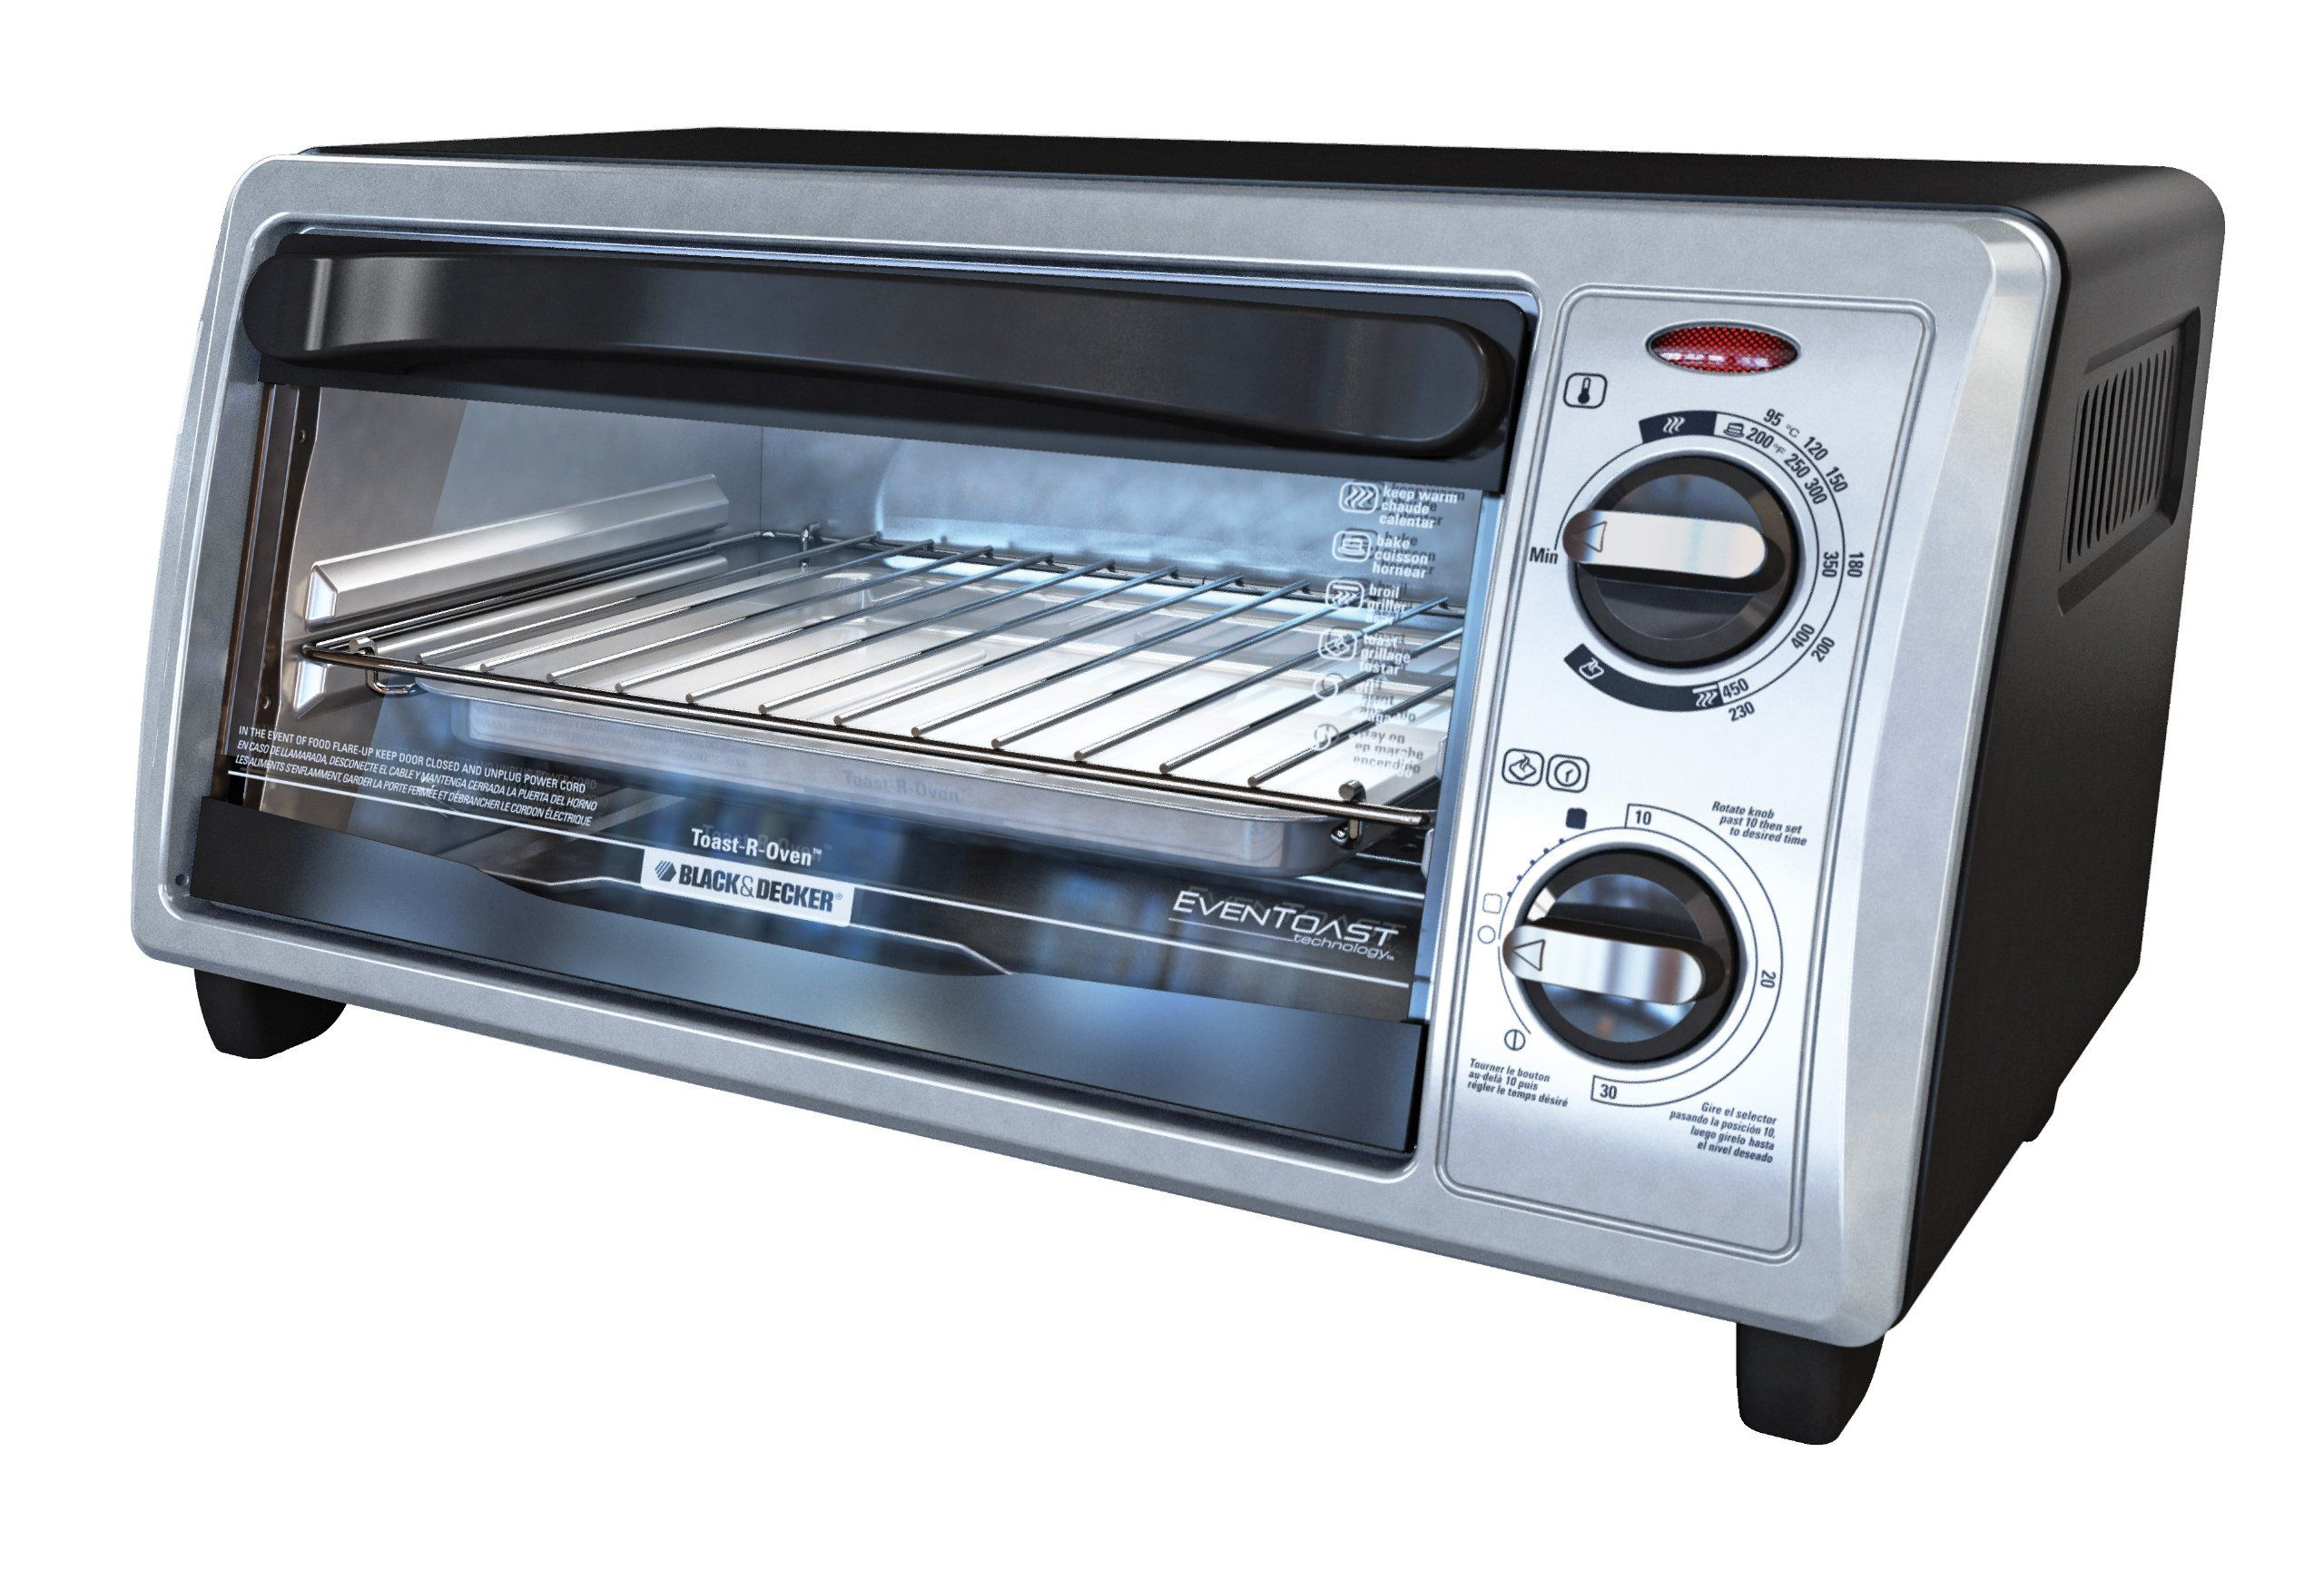 How To Clean A Range Hood And Filter Best Pickist Small Toaster Oven Black And Decker Toaster Black Toaster